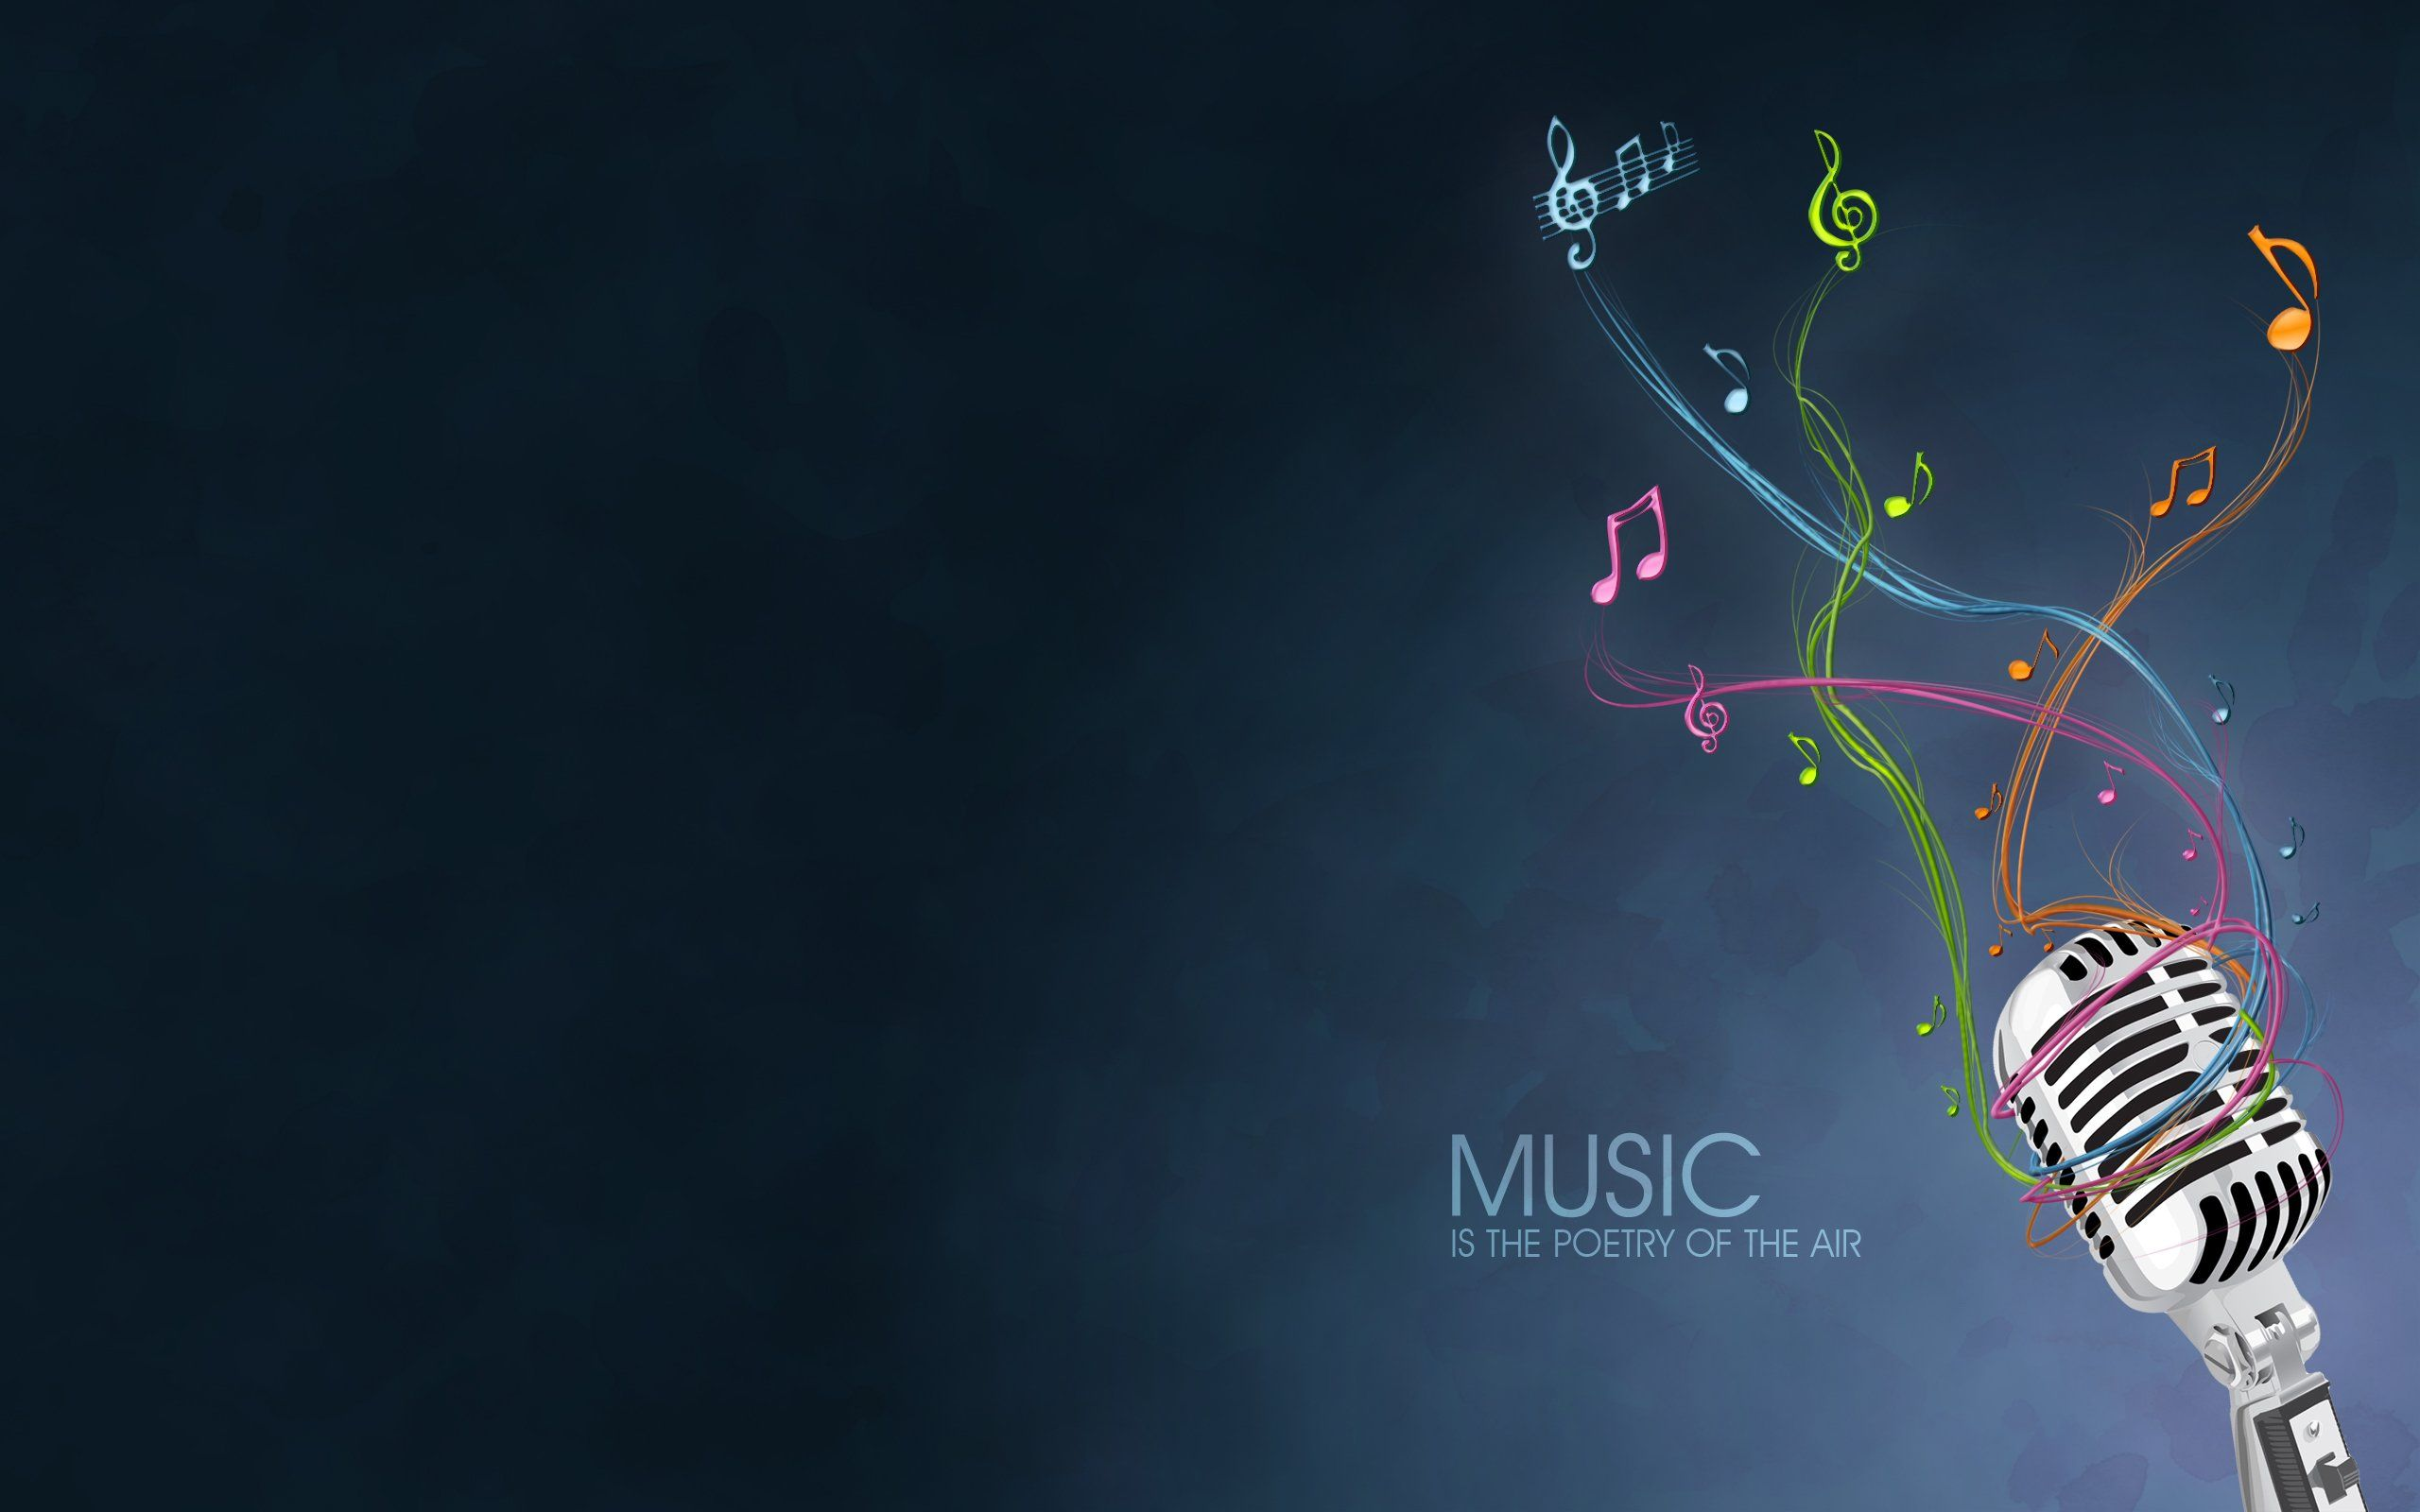 80 Free Music Wallpapers HD for PC: Be Musical! | Music ...